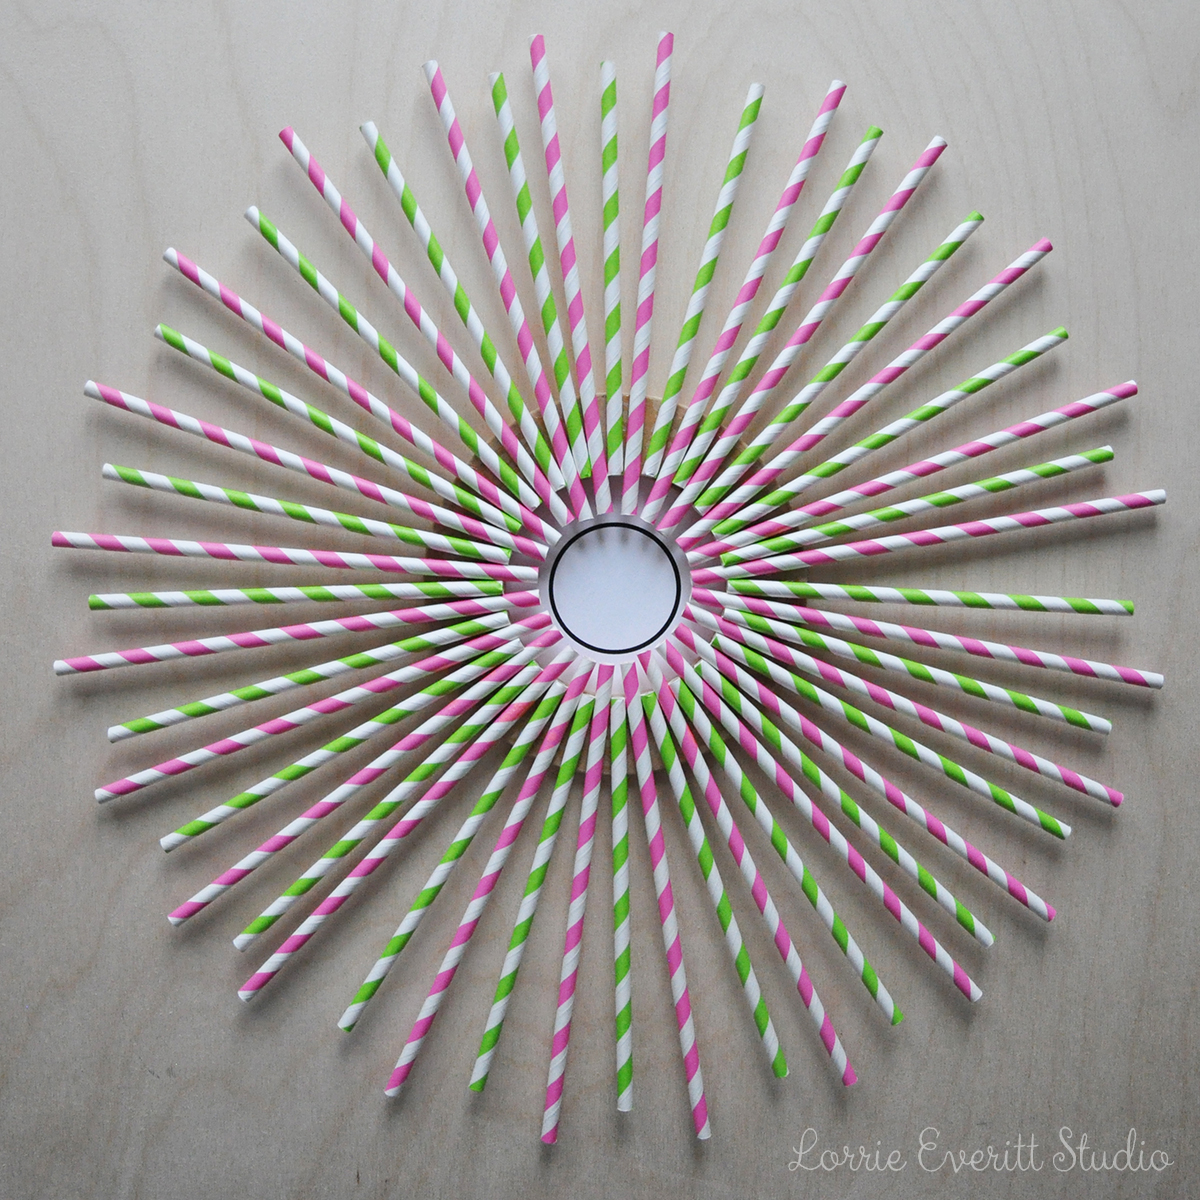 paper straw wreath tutorial | Lorrie Everitt Studio